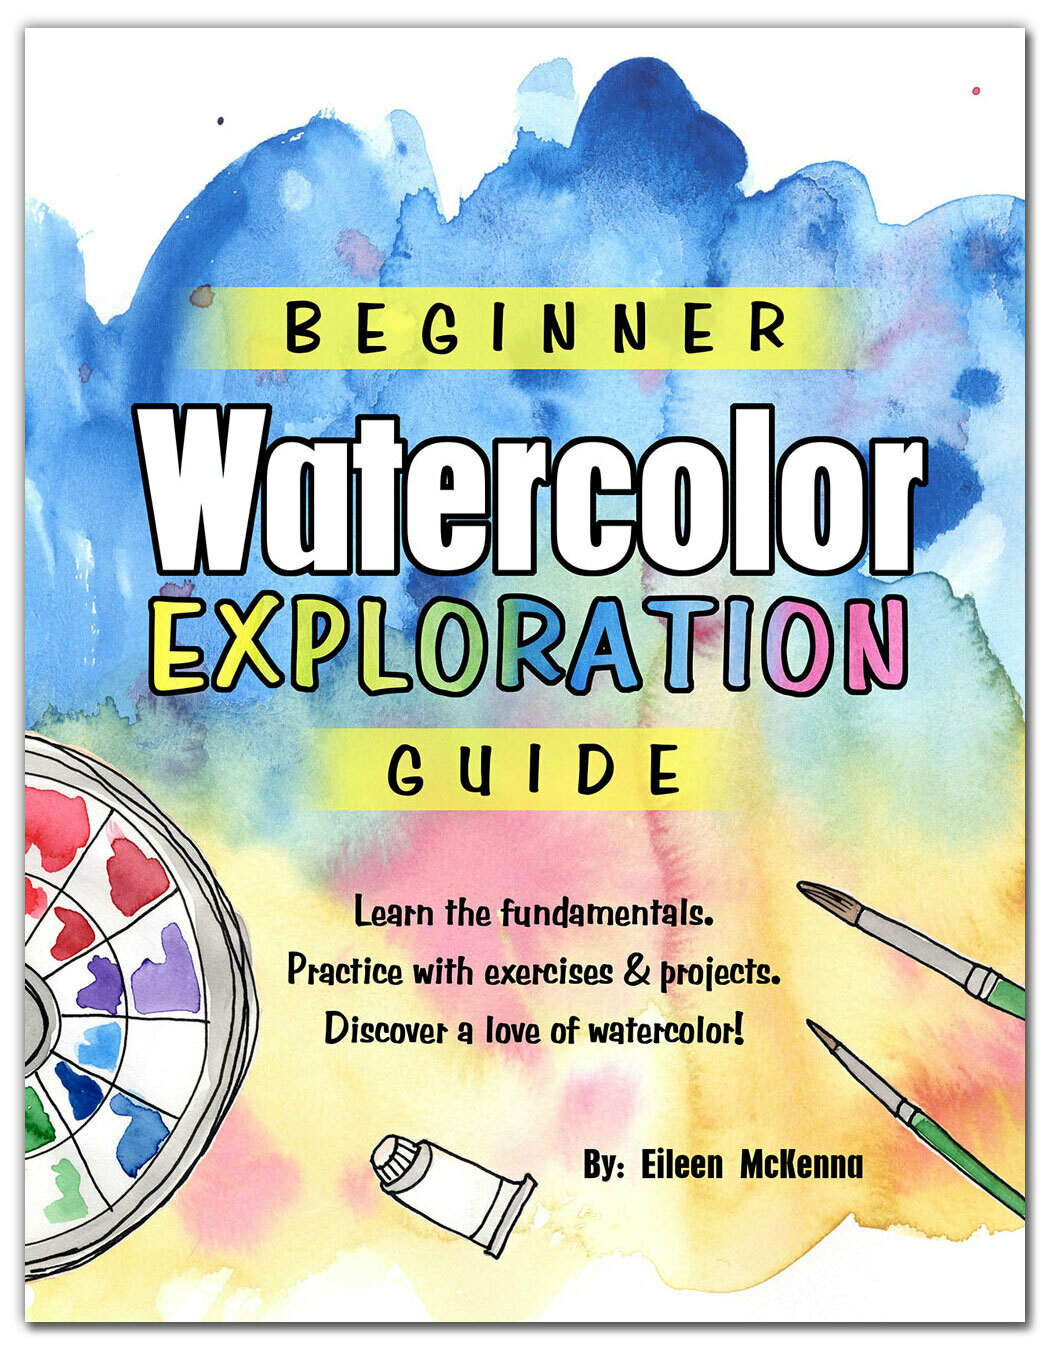 Beginner Watercolor Exploration Guide {pdf download}